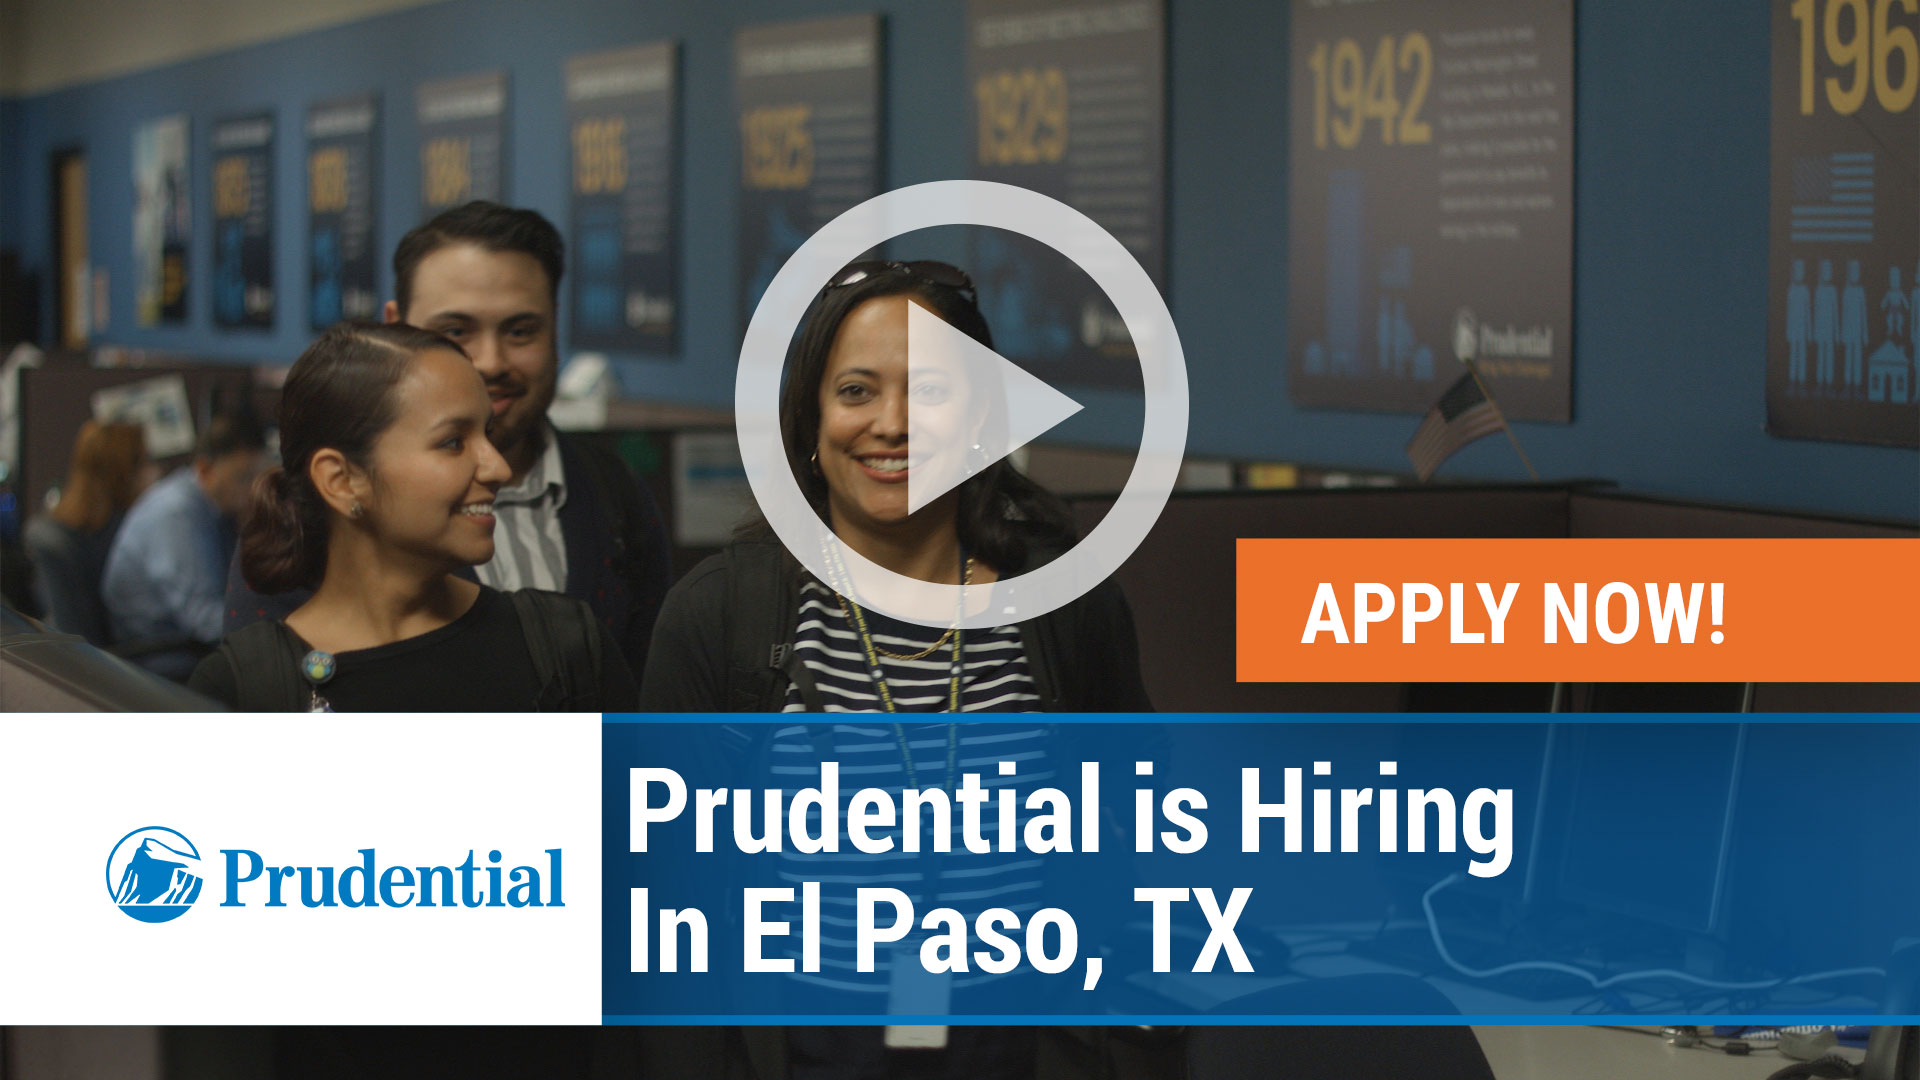 Watch our careers video for available job opening Prudential is hiring in El Paso, TX in El Paso, TX